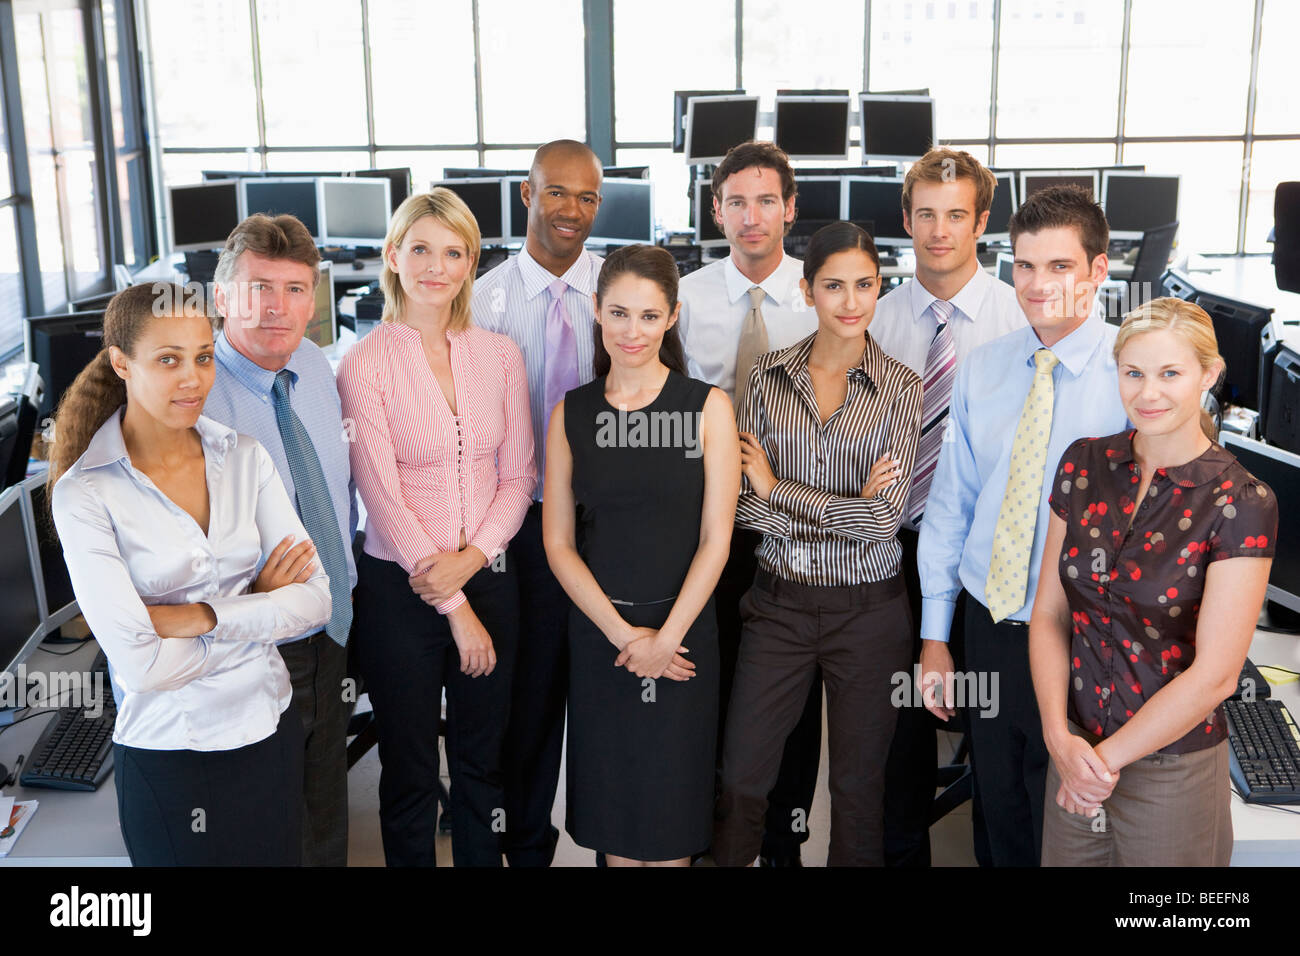 Group Photo Of Stock Traders Team - Stock Image